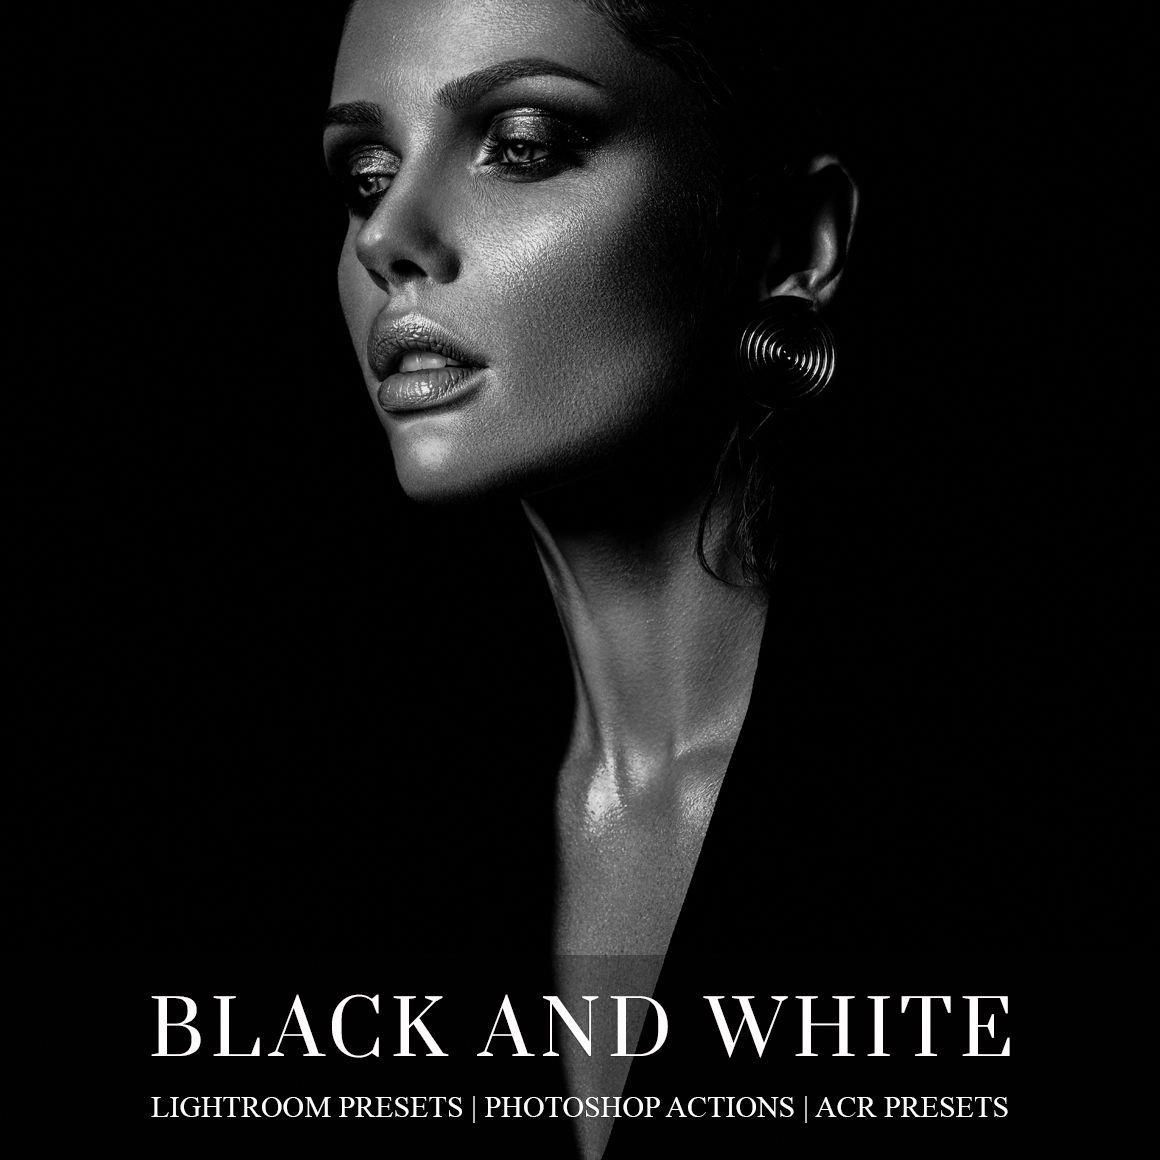 Best lightroom black and white presets great for portraits and wedding photography diyphotography